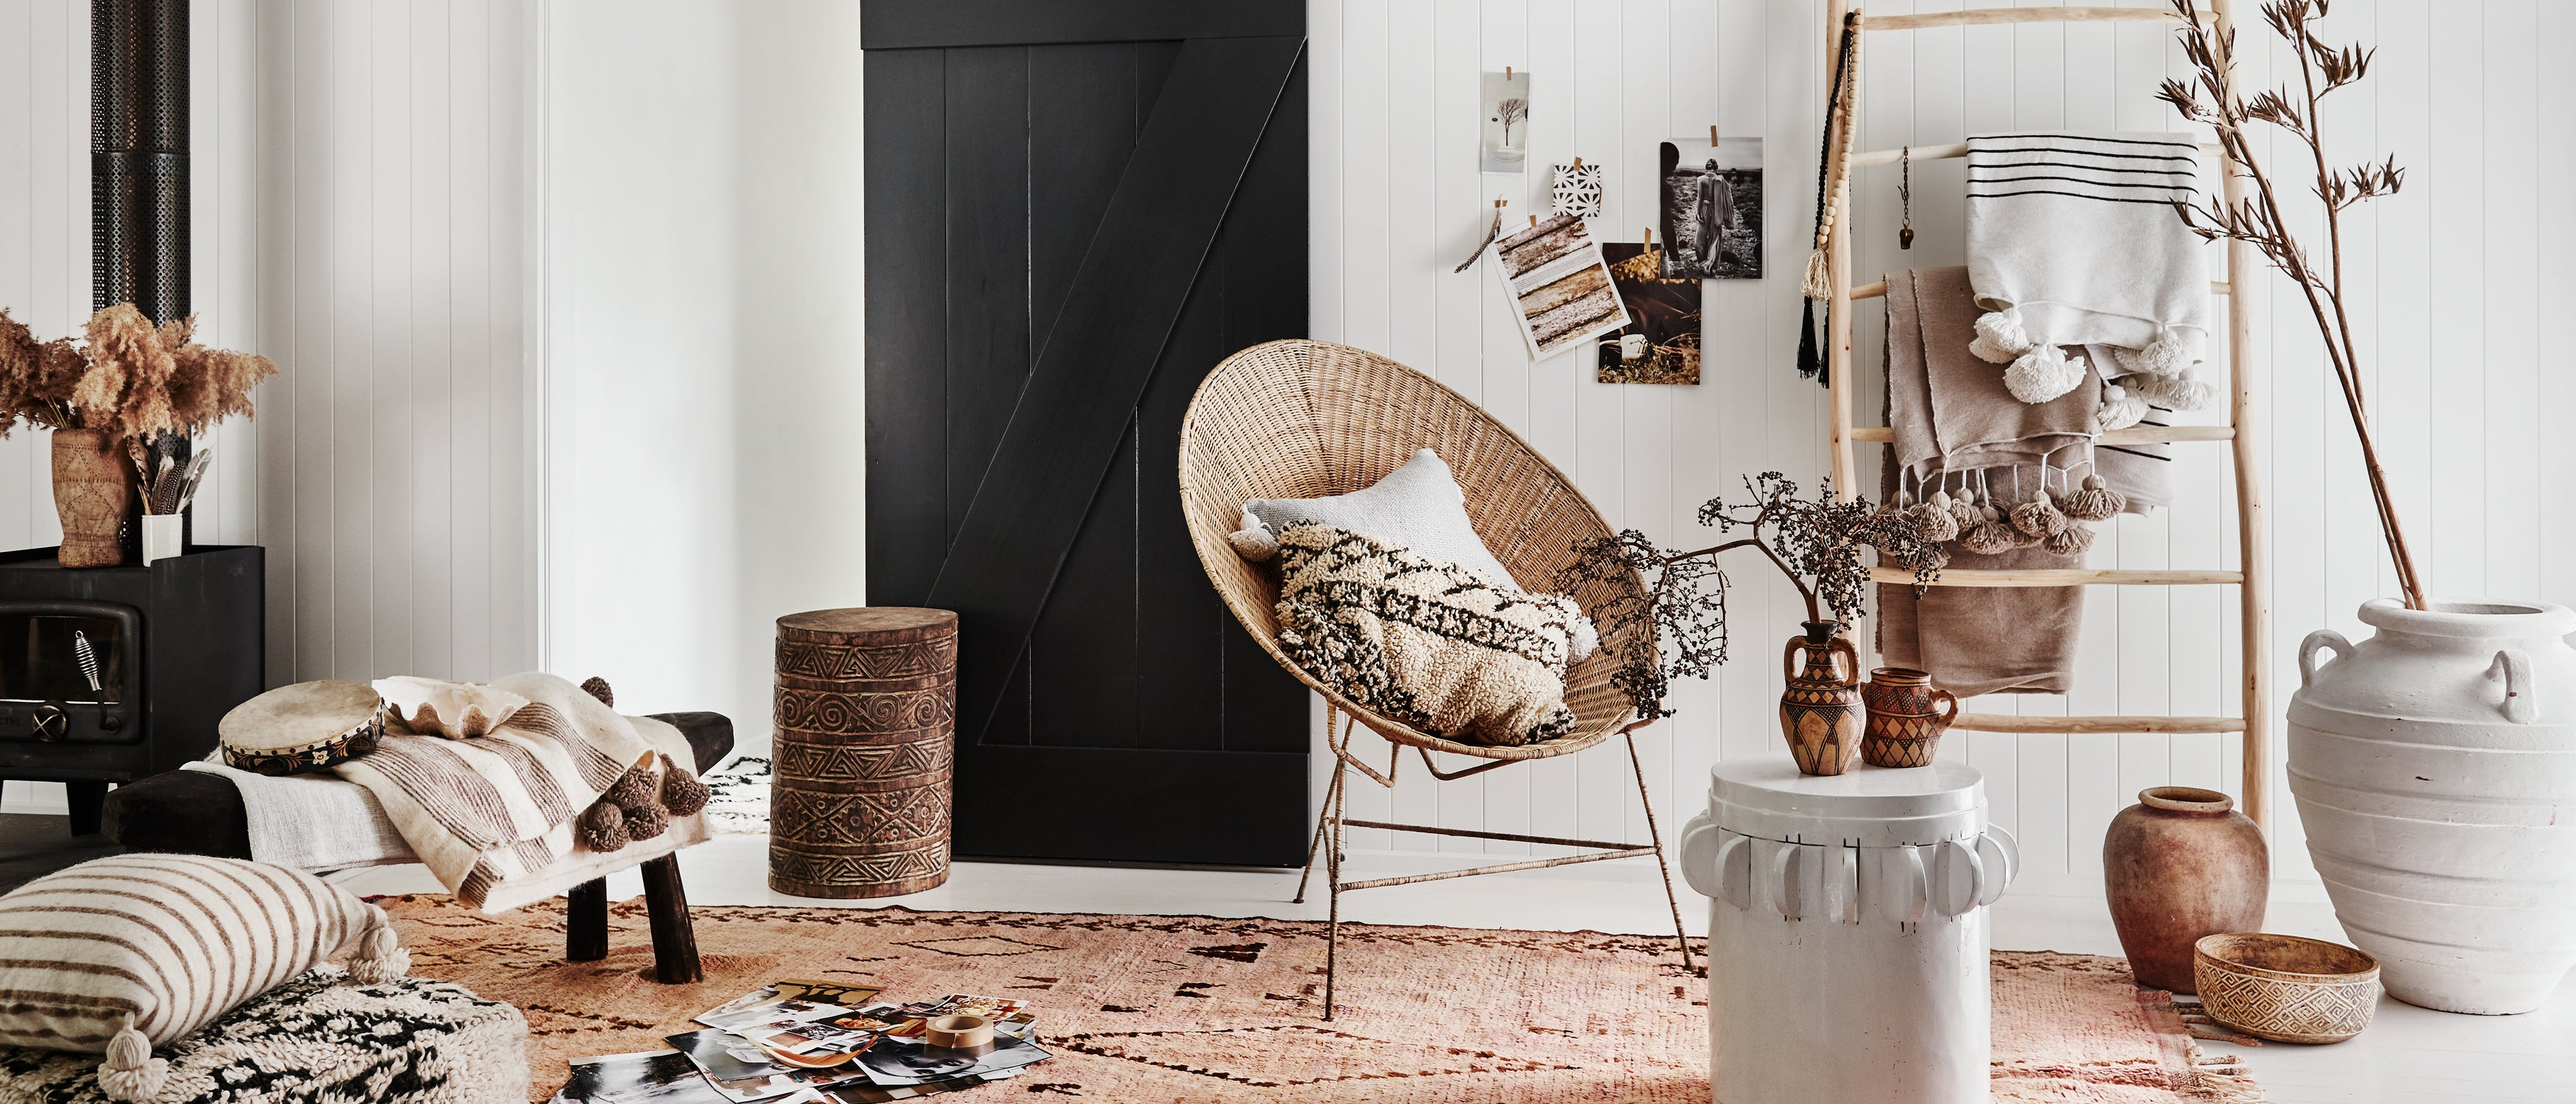 Online shopping australia homewares